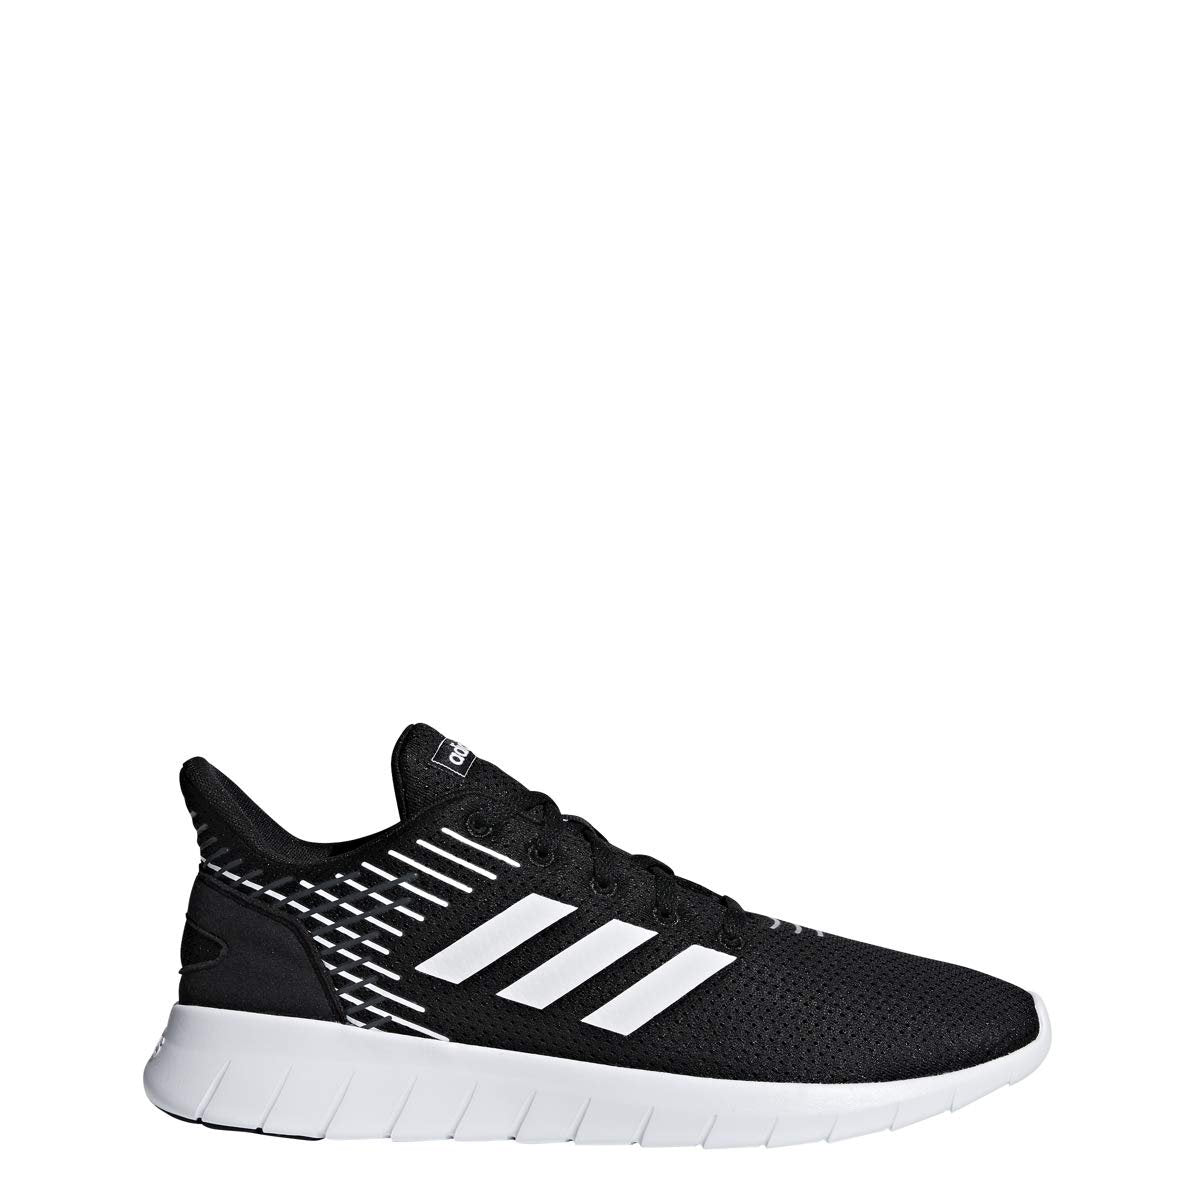 adidas Asweerun Shoe - Men's Running